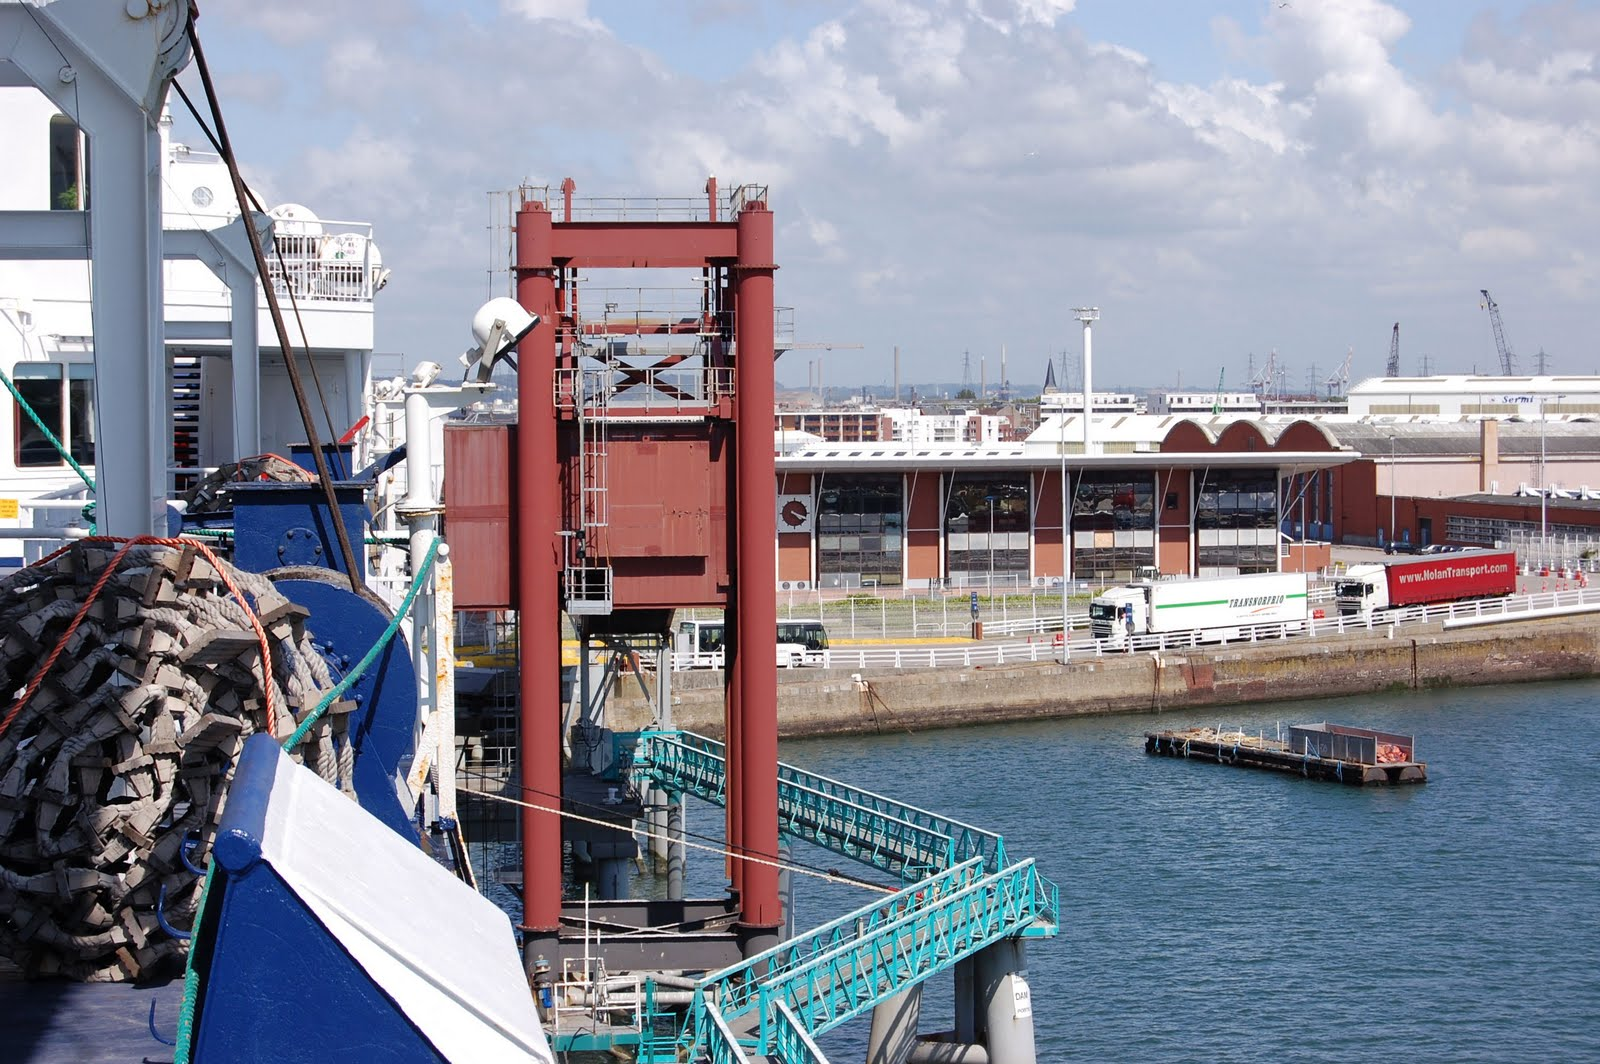 Portsmouth To Le Havre Ferry >> Vmf Alifesailingcruiseferries Blogspot Co Uk The Ferries Terminal